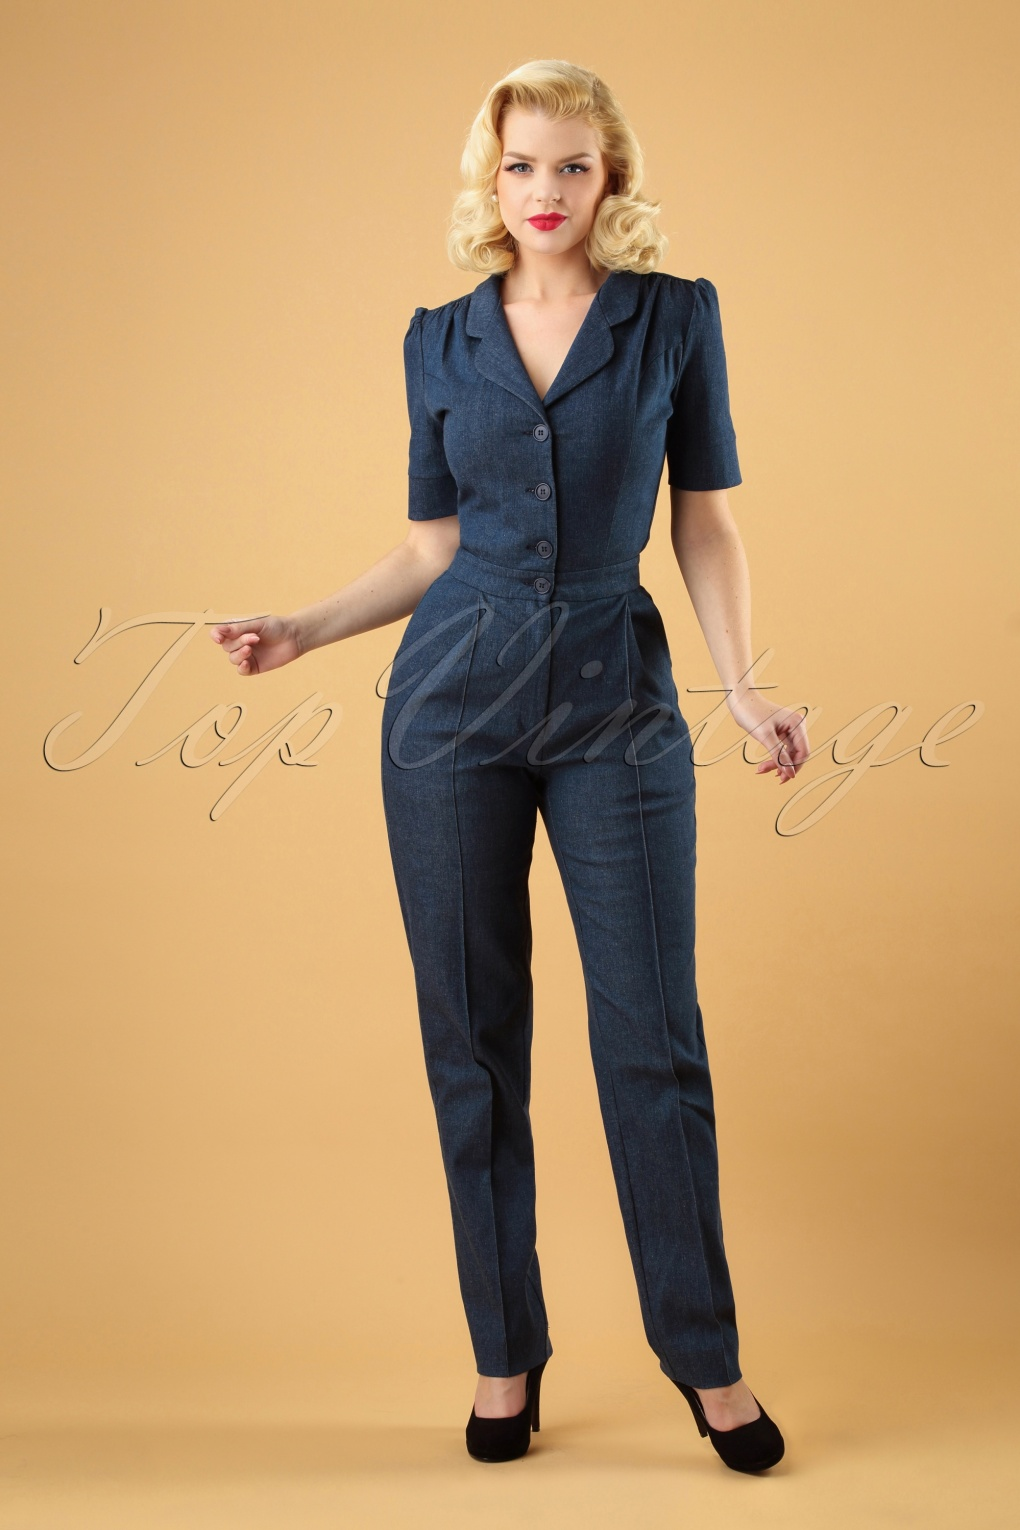 Rosie the Riveter Costume & Outfit Ideas 40s Classic Jumpsuit in Denim £142.78 AT vintagedancer.com